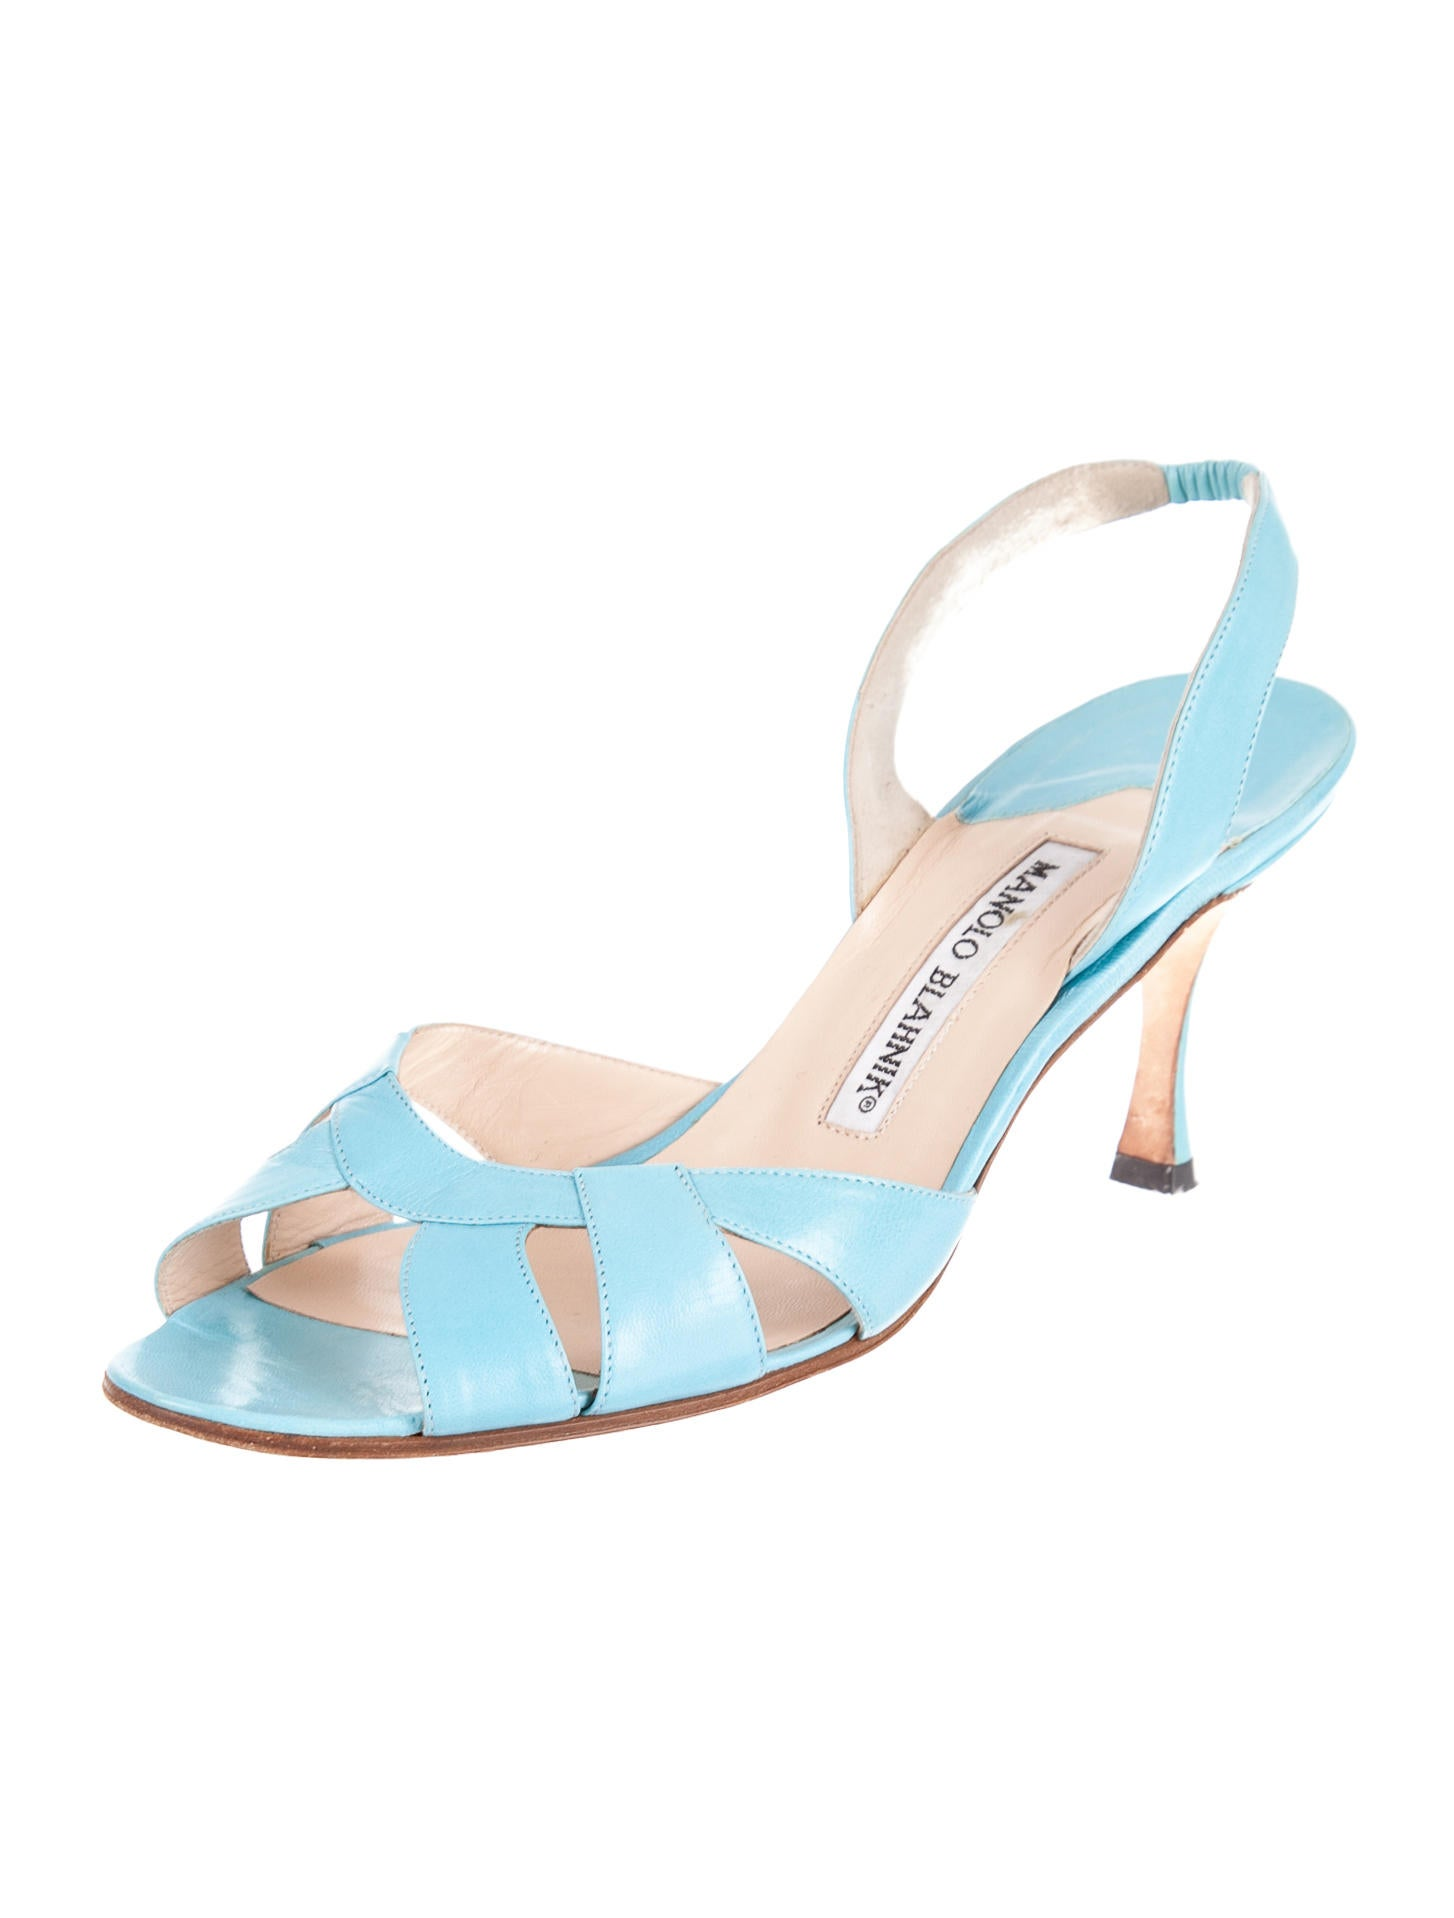 Manolo blahnik sandals shoes moo32168 the realreal for Shoes by manolo blahnik